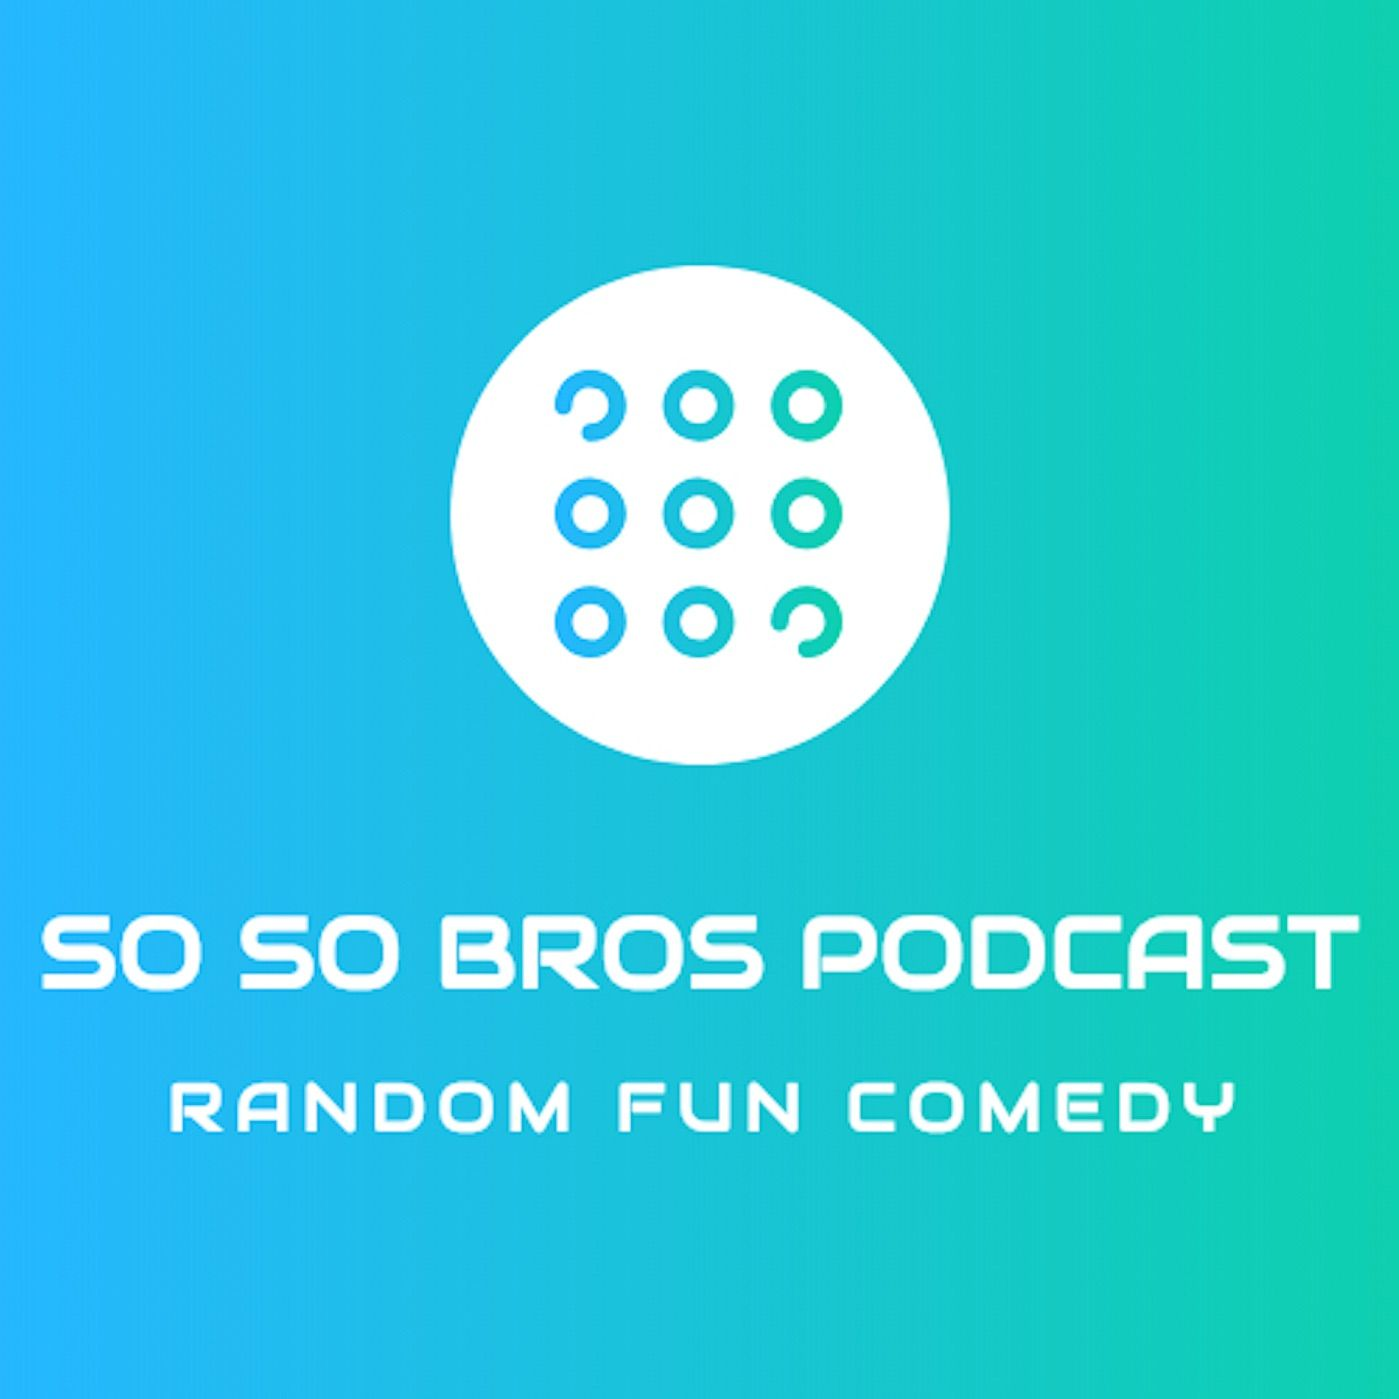 SoSo Bros Podcast 25 - Surprise Guest